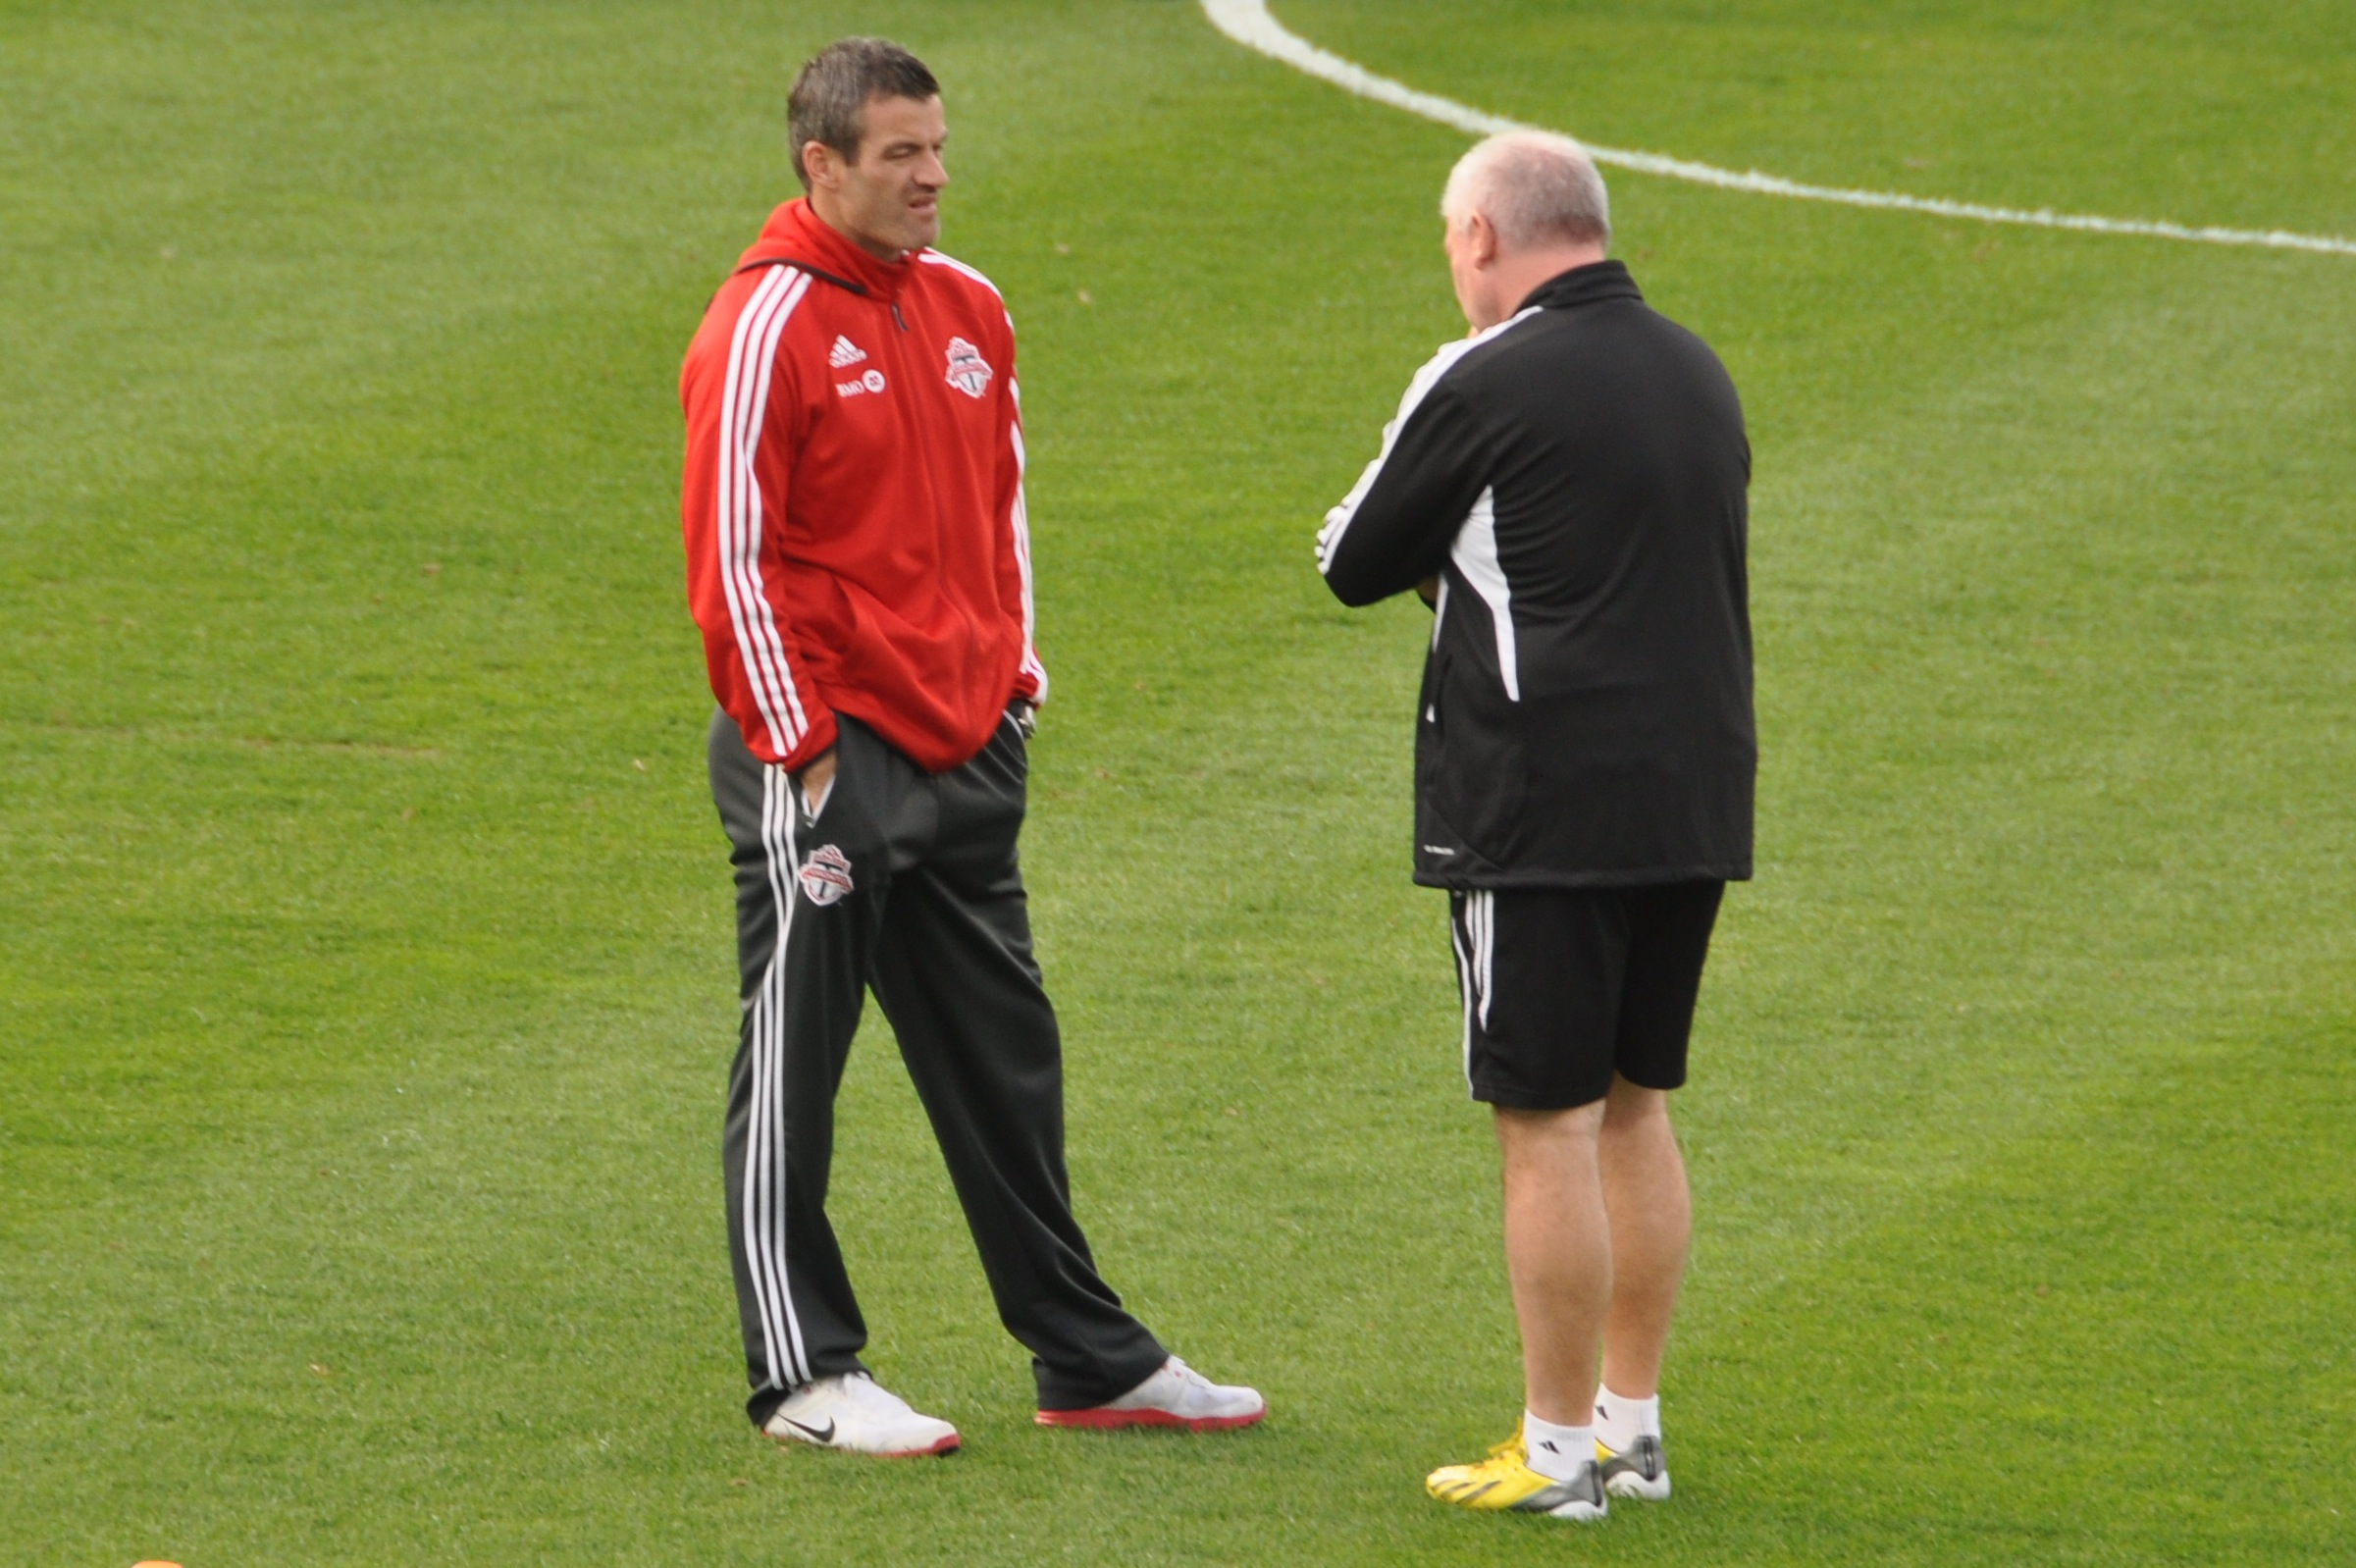 """ Ryan Nelson coaching Toronto FC 2013 "" BY  abdallahh  IS LICENSED UNDER  CC BY 2.0 ."